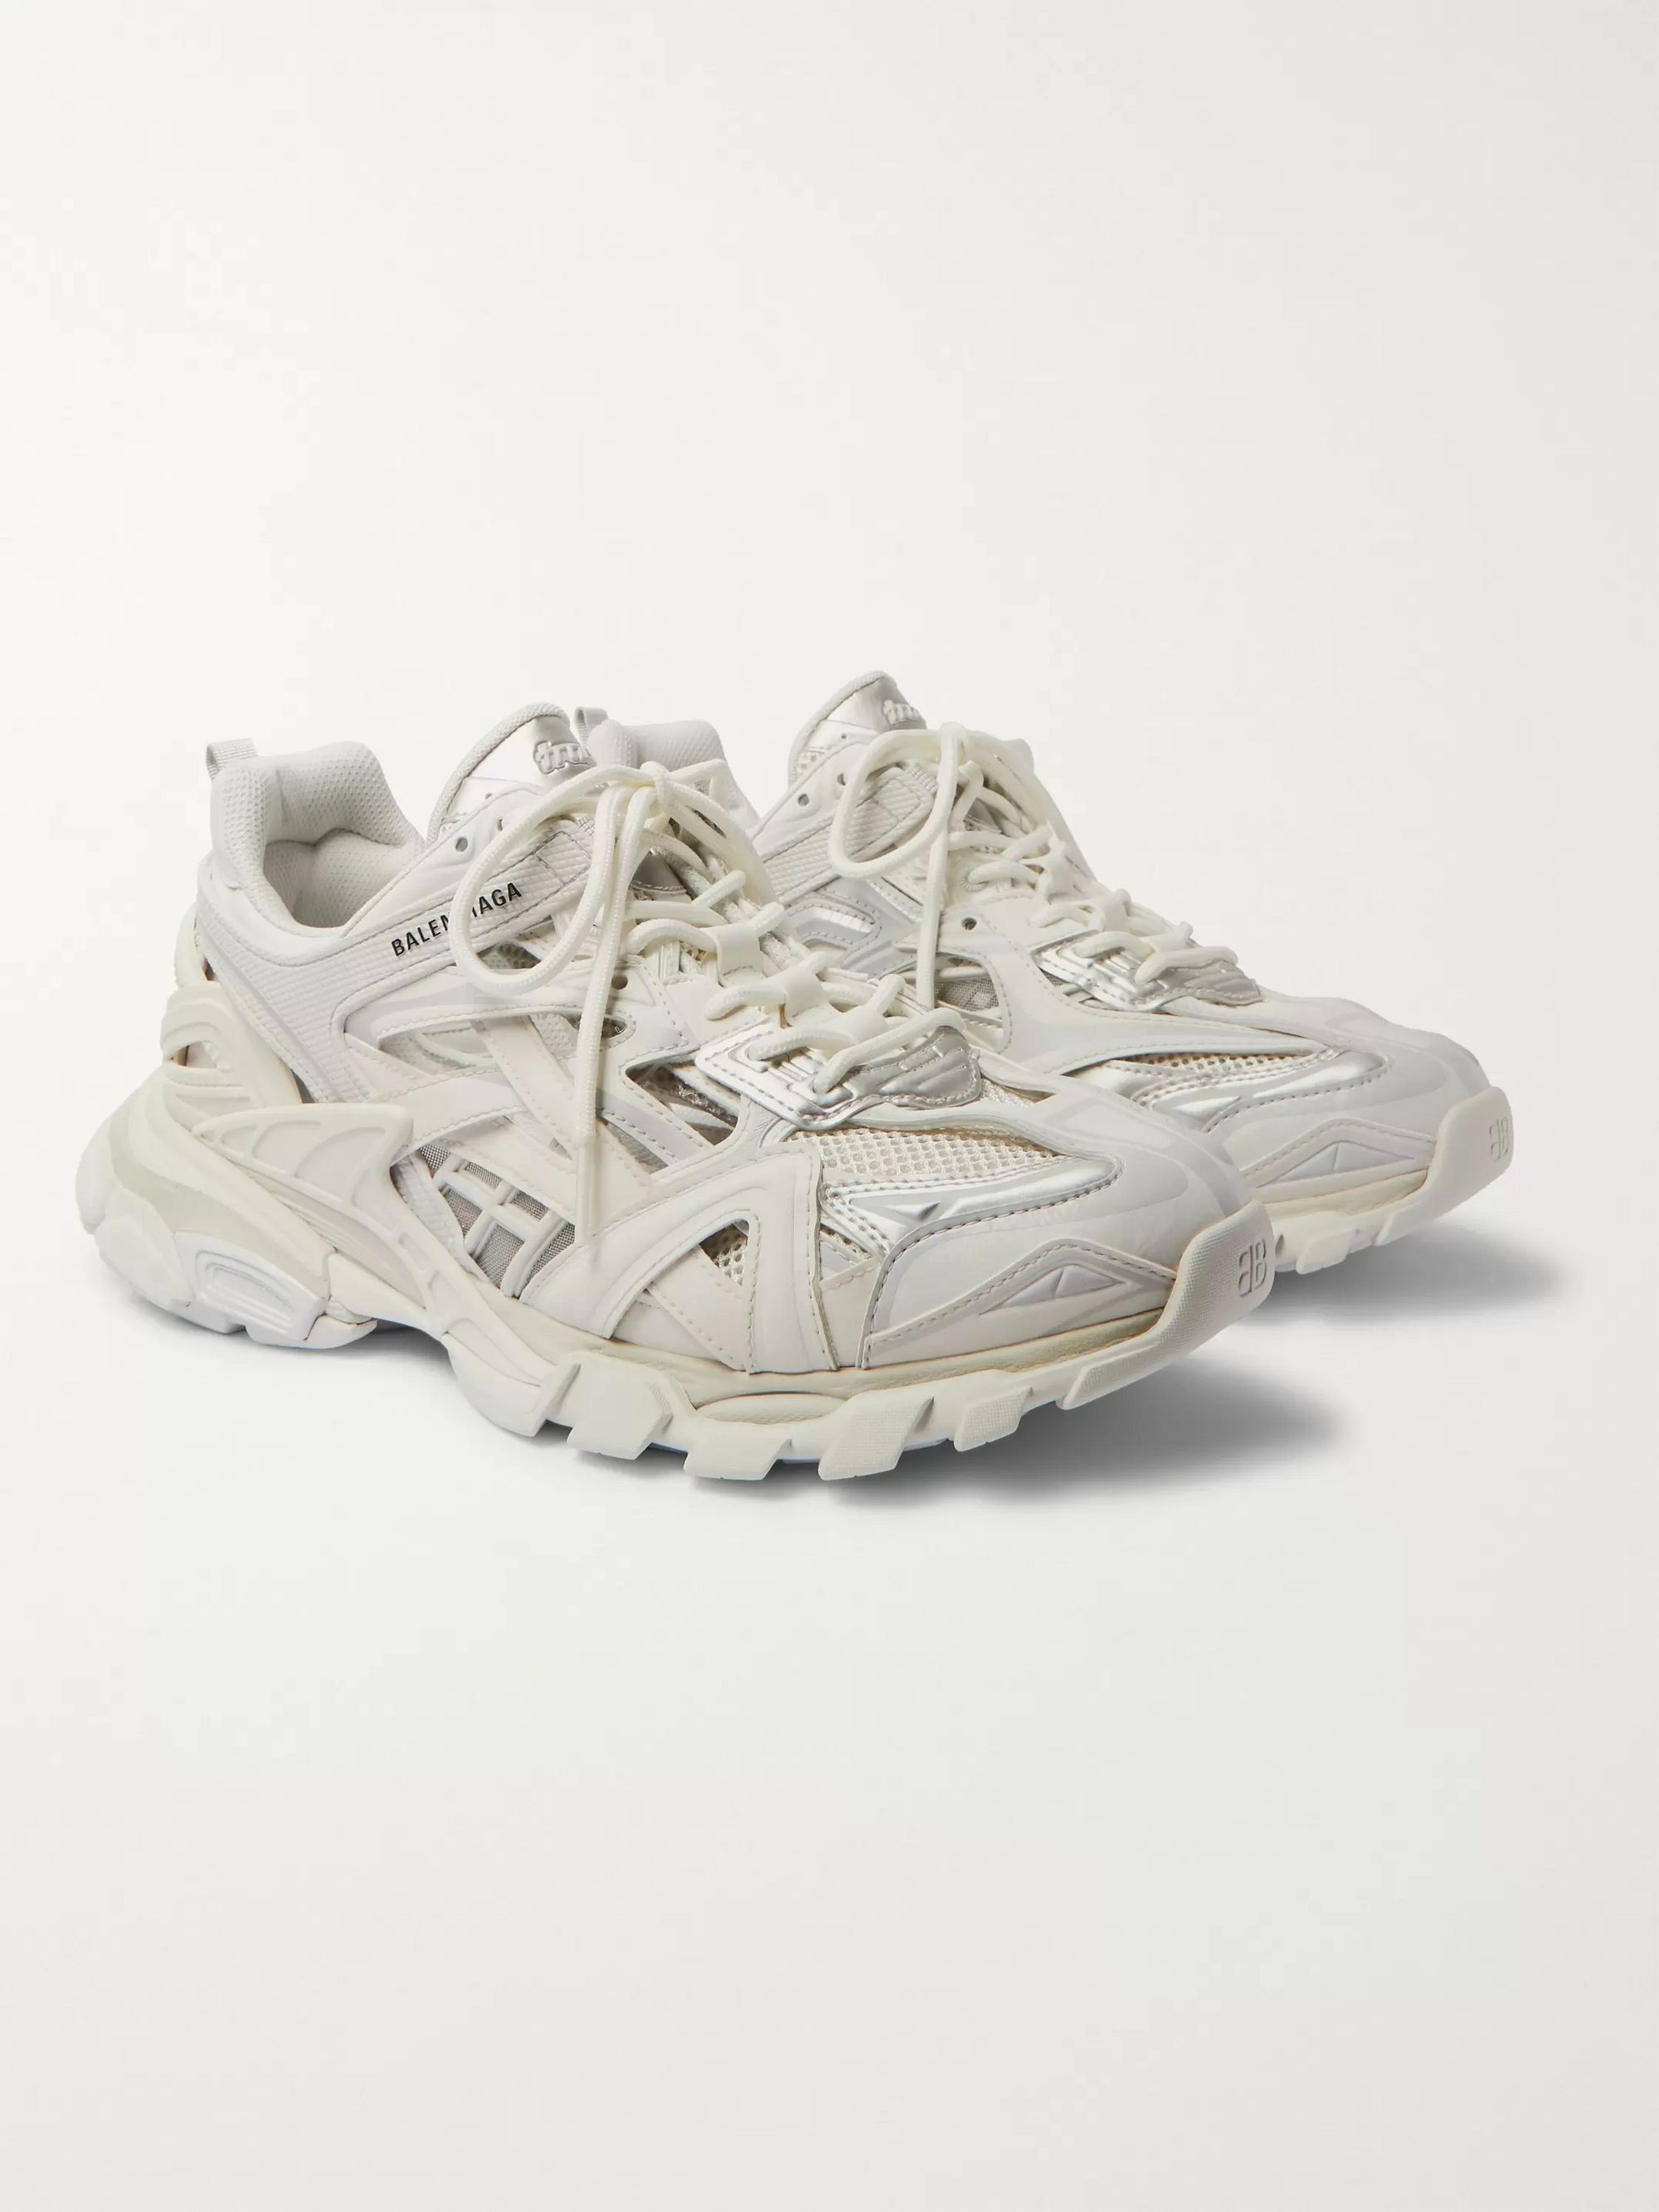 White Track 2 Nylon Mesh And Rubber Sneakers Balenciaga Mr Porter